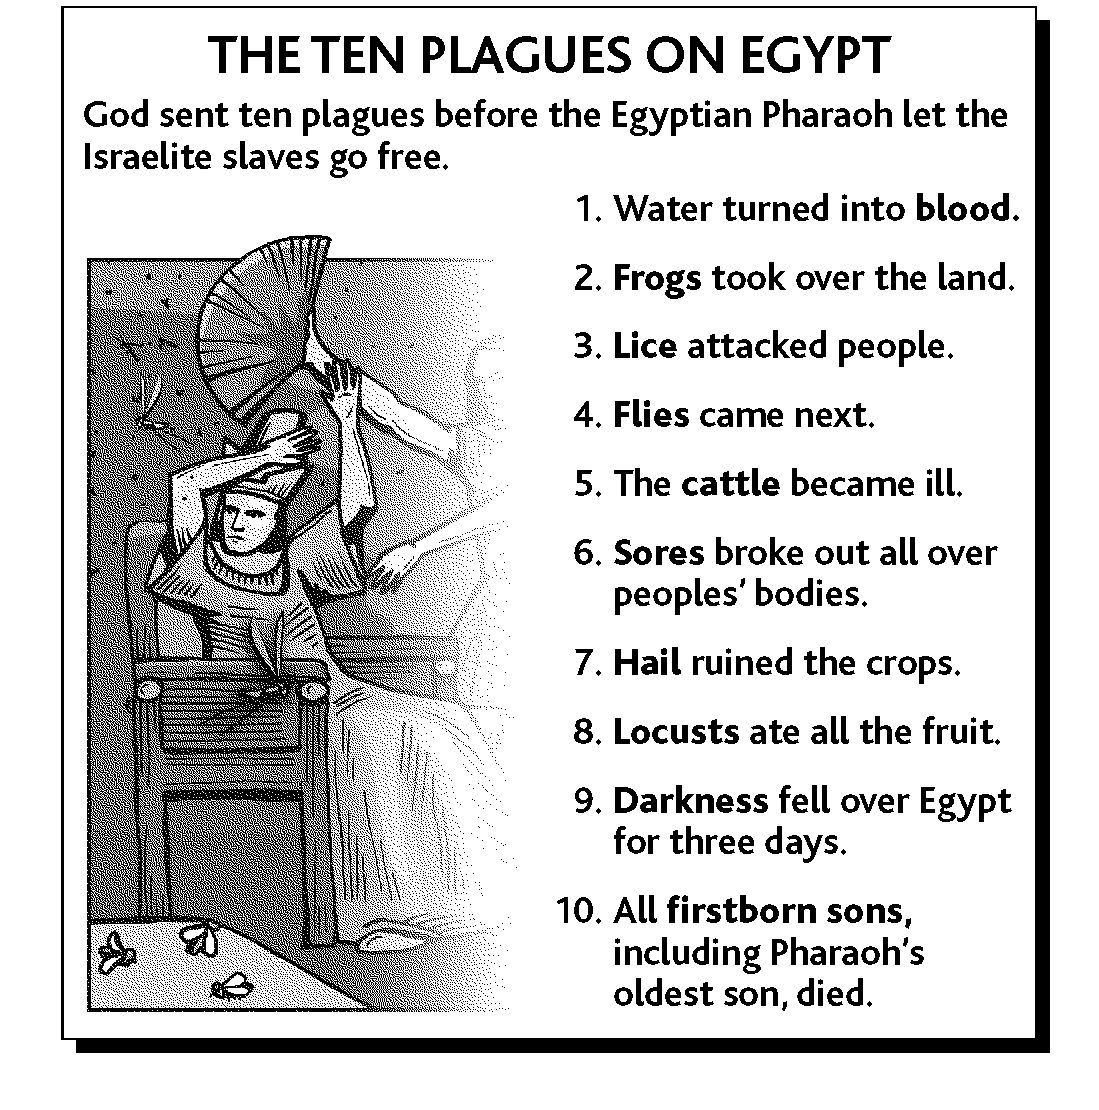 The Exodus: The Ten Plagues of Egypt